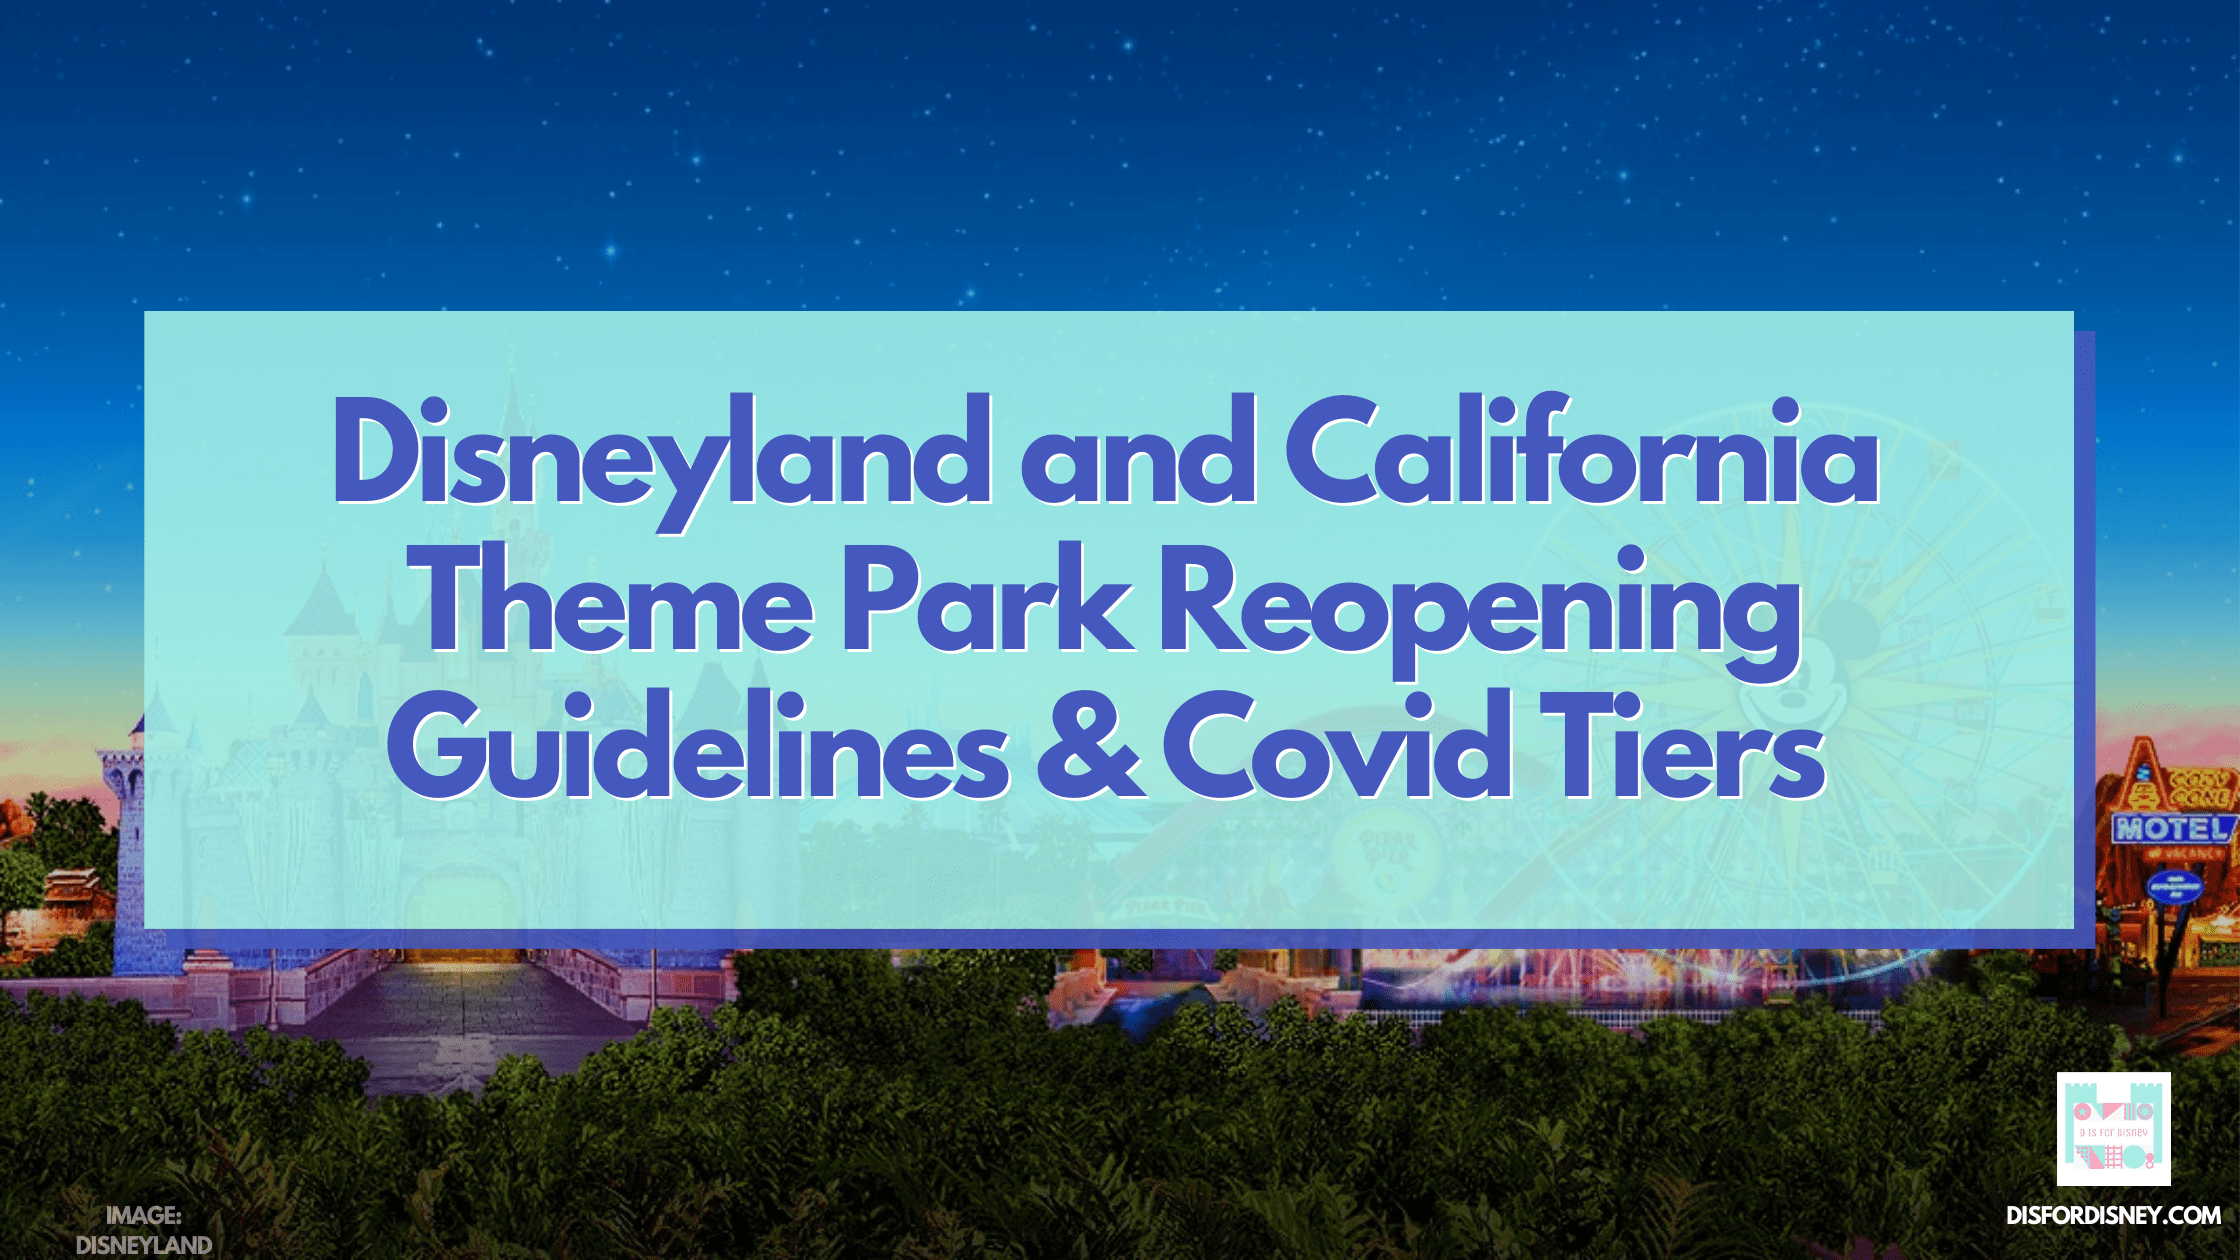 Disneyland-and-California-Theme-Park-Reopening-Guidelines-Covid-Tiers